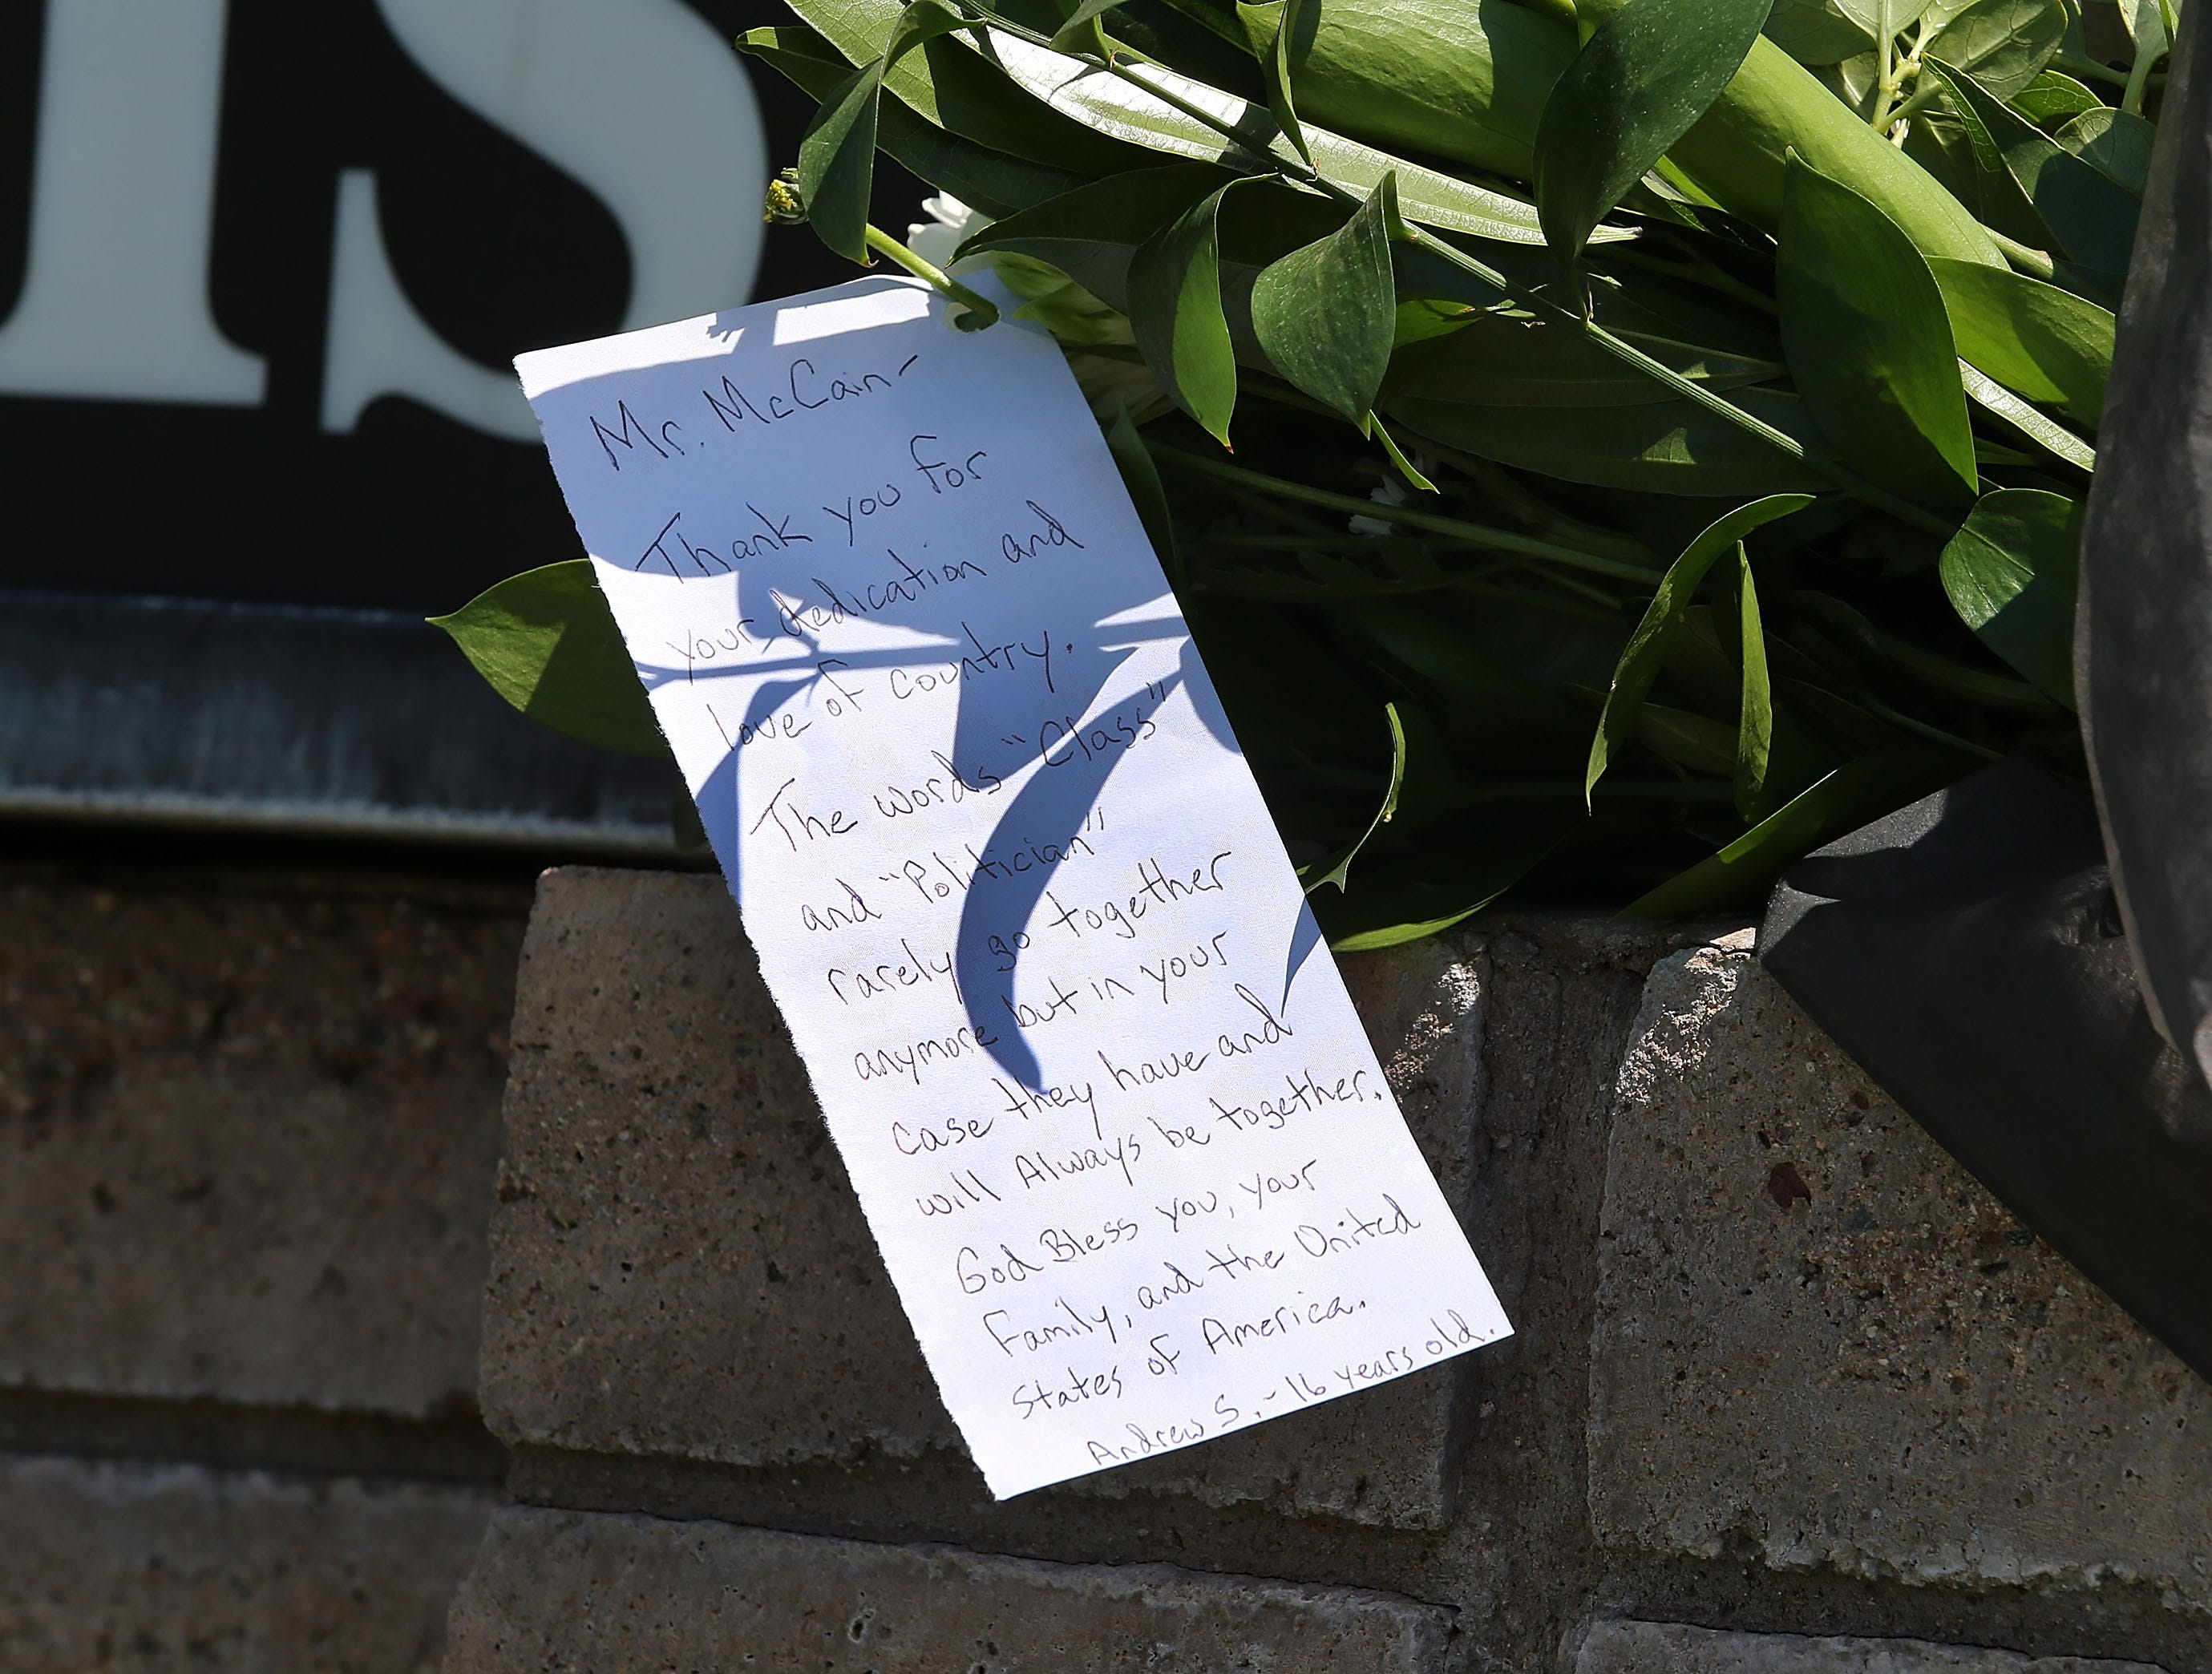 A personal note attached to flowers is left at the Dignity Memorial Mortuary to pay respects to the late Sen. John McCain on Aug. 26, 2018 in Phoenix, Ariz.